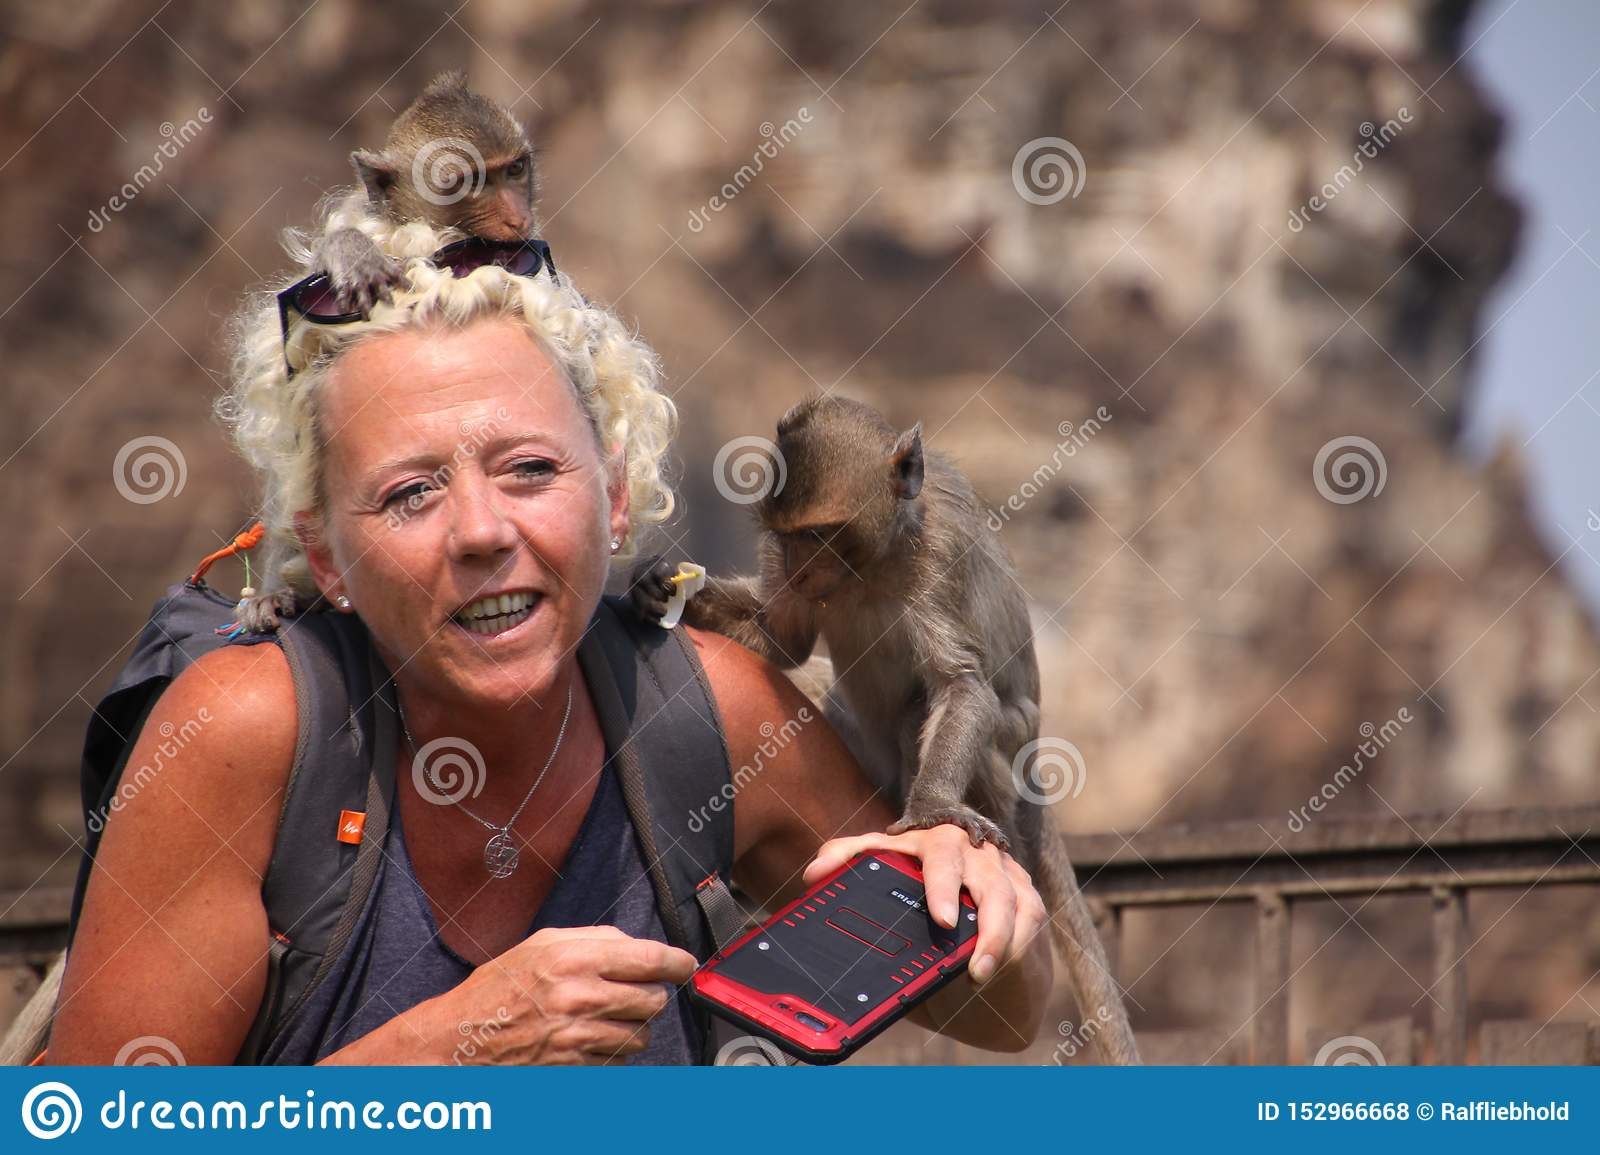 LOPBURI, THAILAND - JANUARY 9 2019: Tourist Woman attacked by monkeys stealing her sunglasses